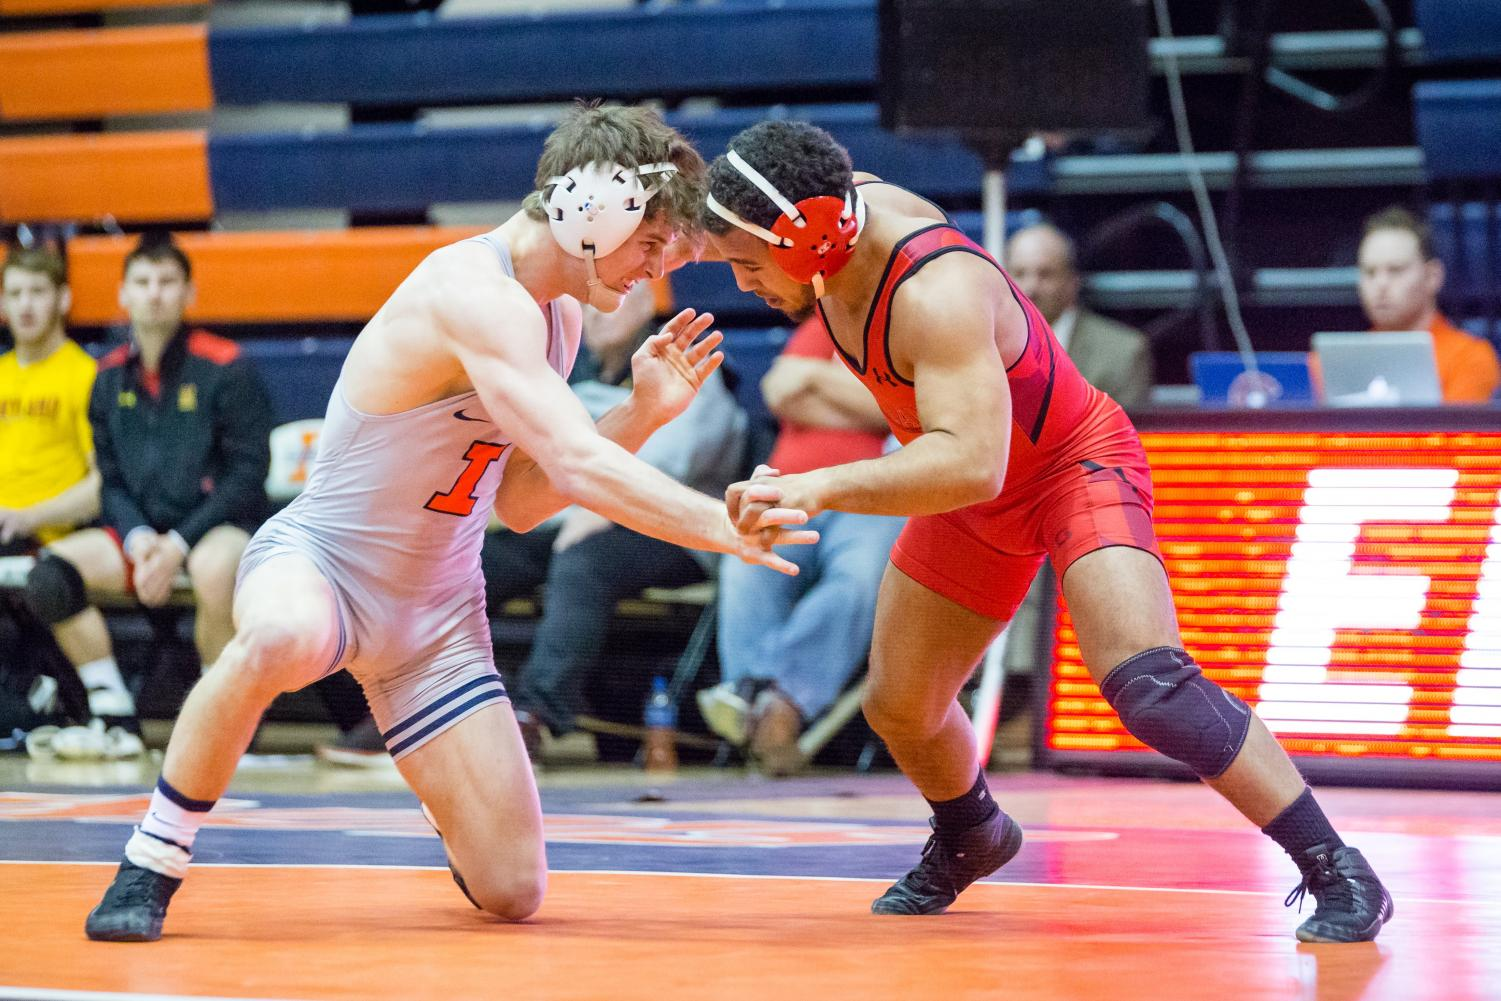 Illinois' Eric Barone wrestles with Maryland's Alfred Bannister in the 149-pound weight class during a meet at Huff Hall on Jan. 28. The Illini won 25-18.